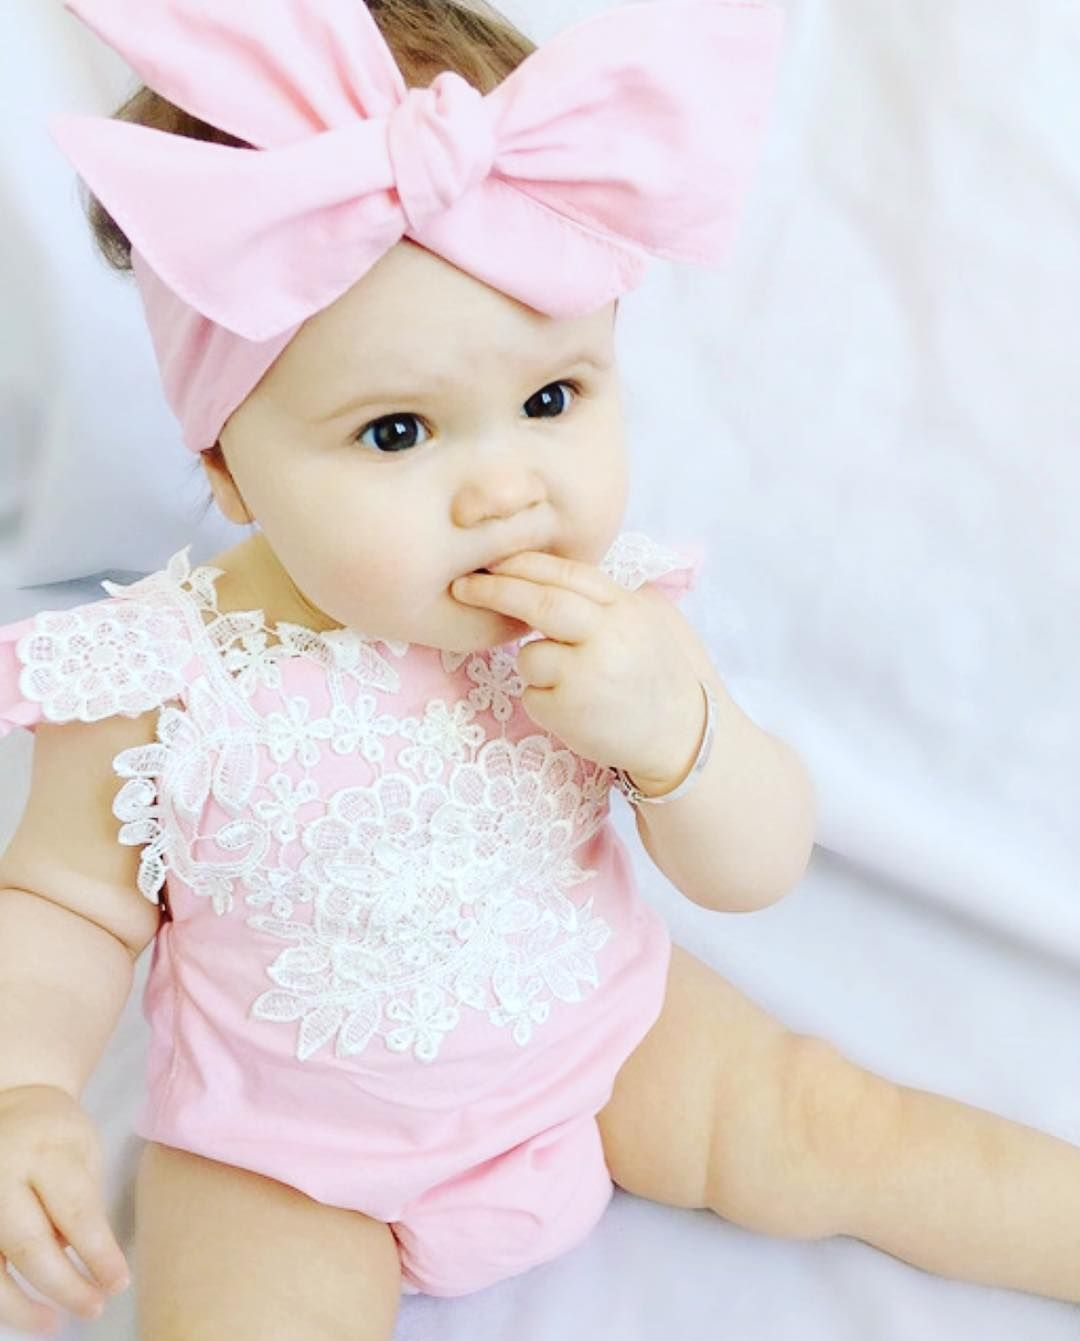 5695d345 Newborn Baby Girl Clothes · Watch the Best YouTube Videos Online - New Acc  follow #baby #babies #adorable